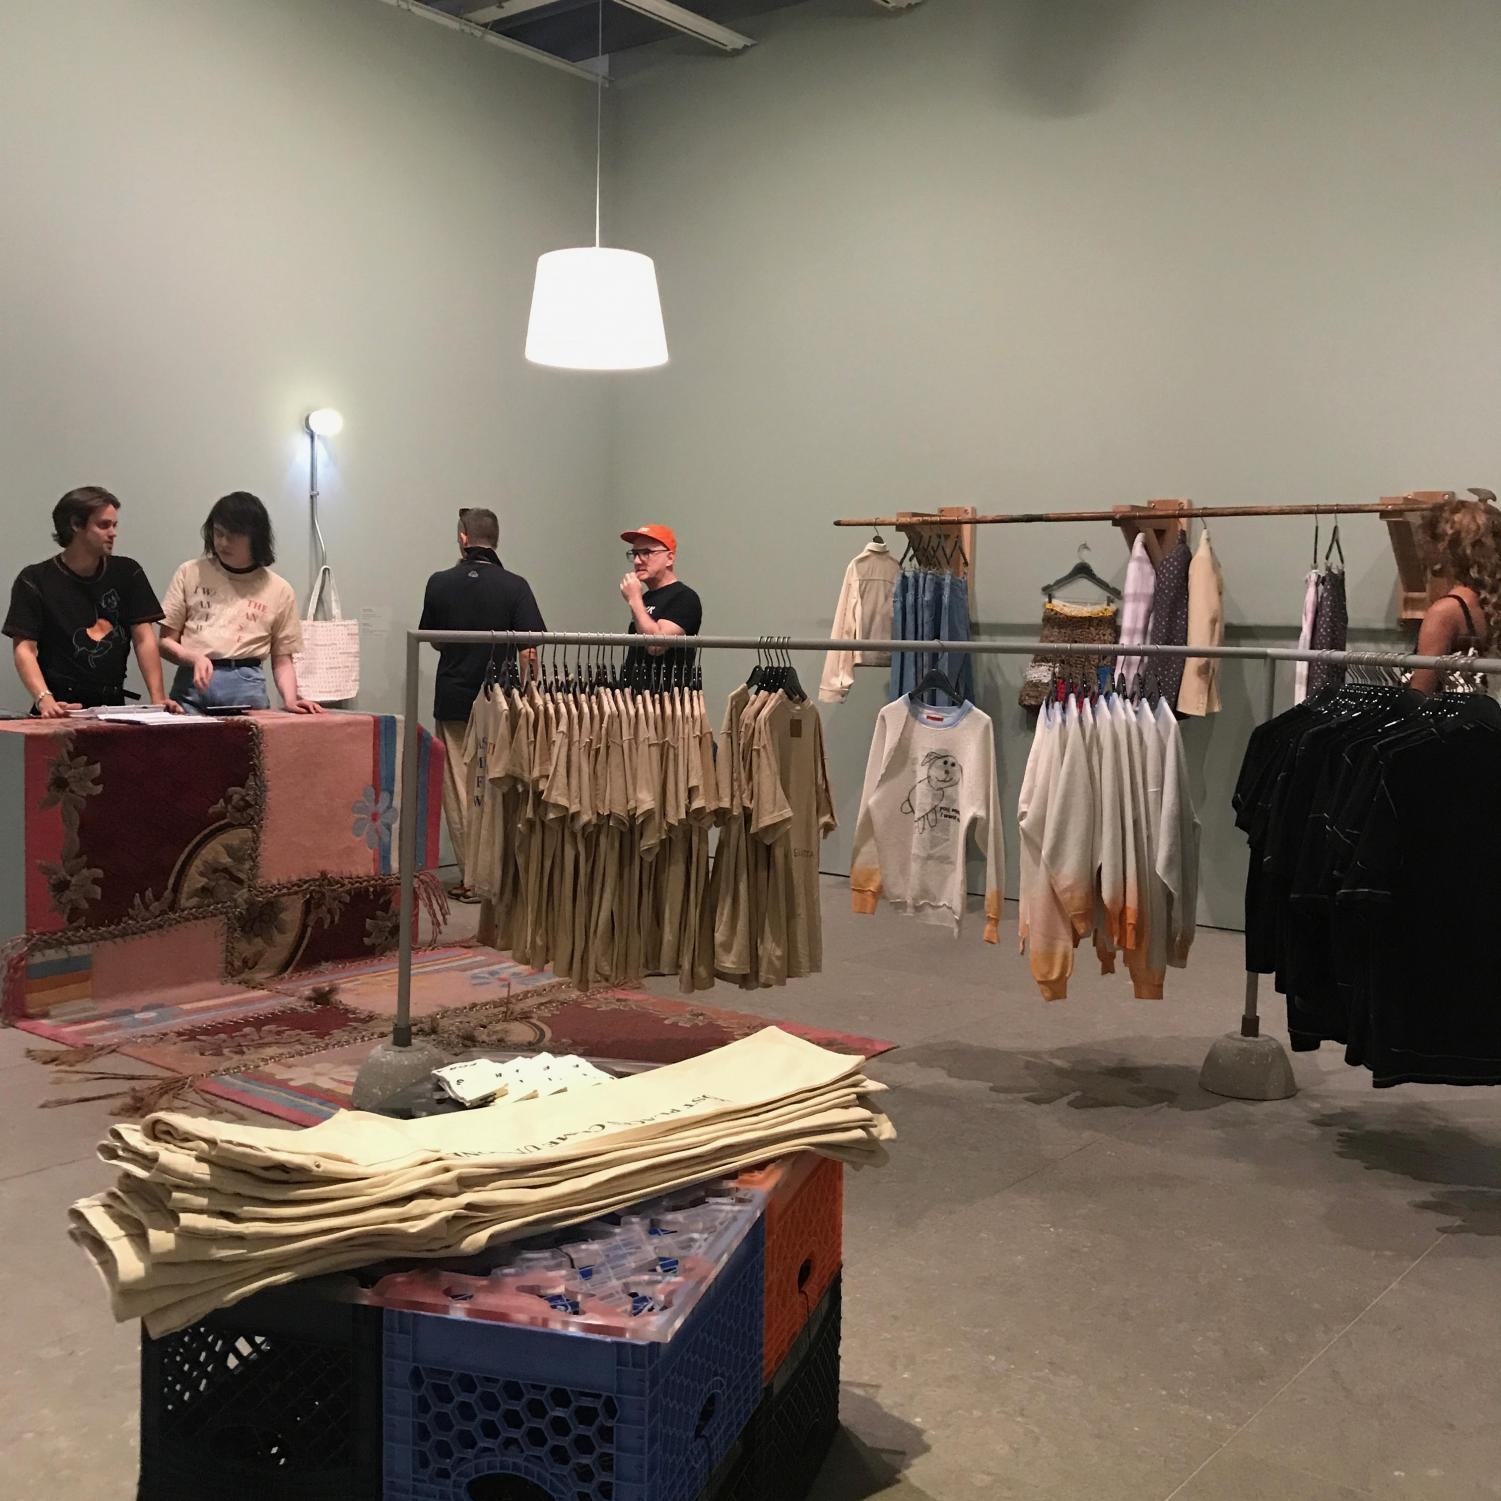 """Eckhaus Latta's """"Possesed"""" exhibit at the Whitney tackles ambiguity and duality."""